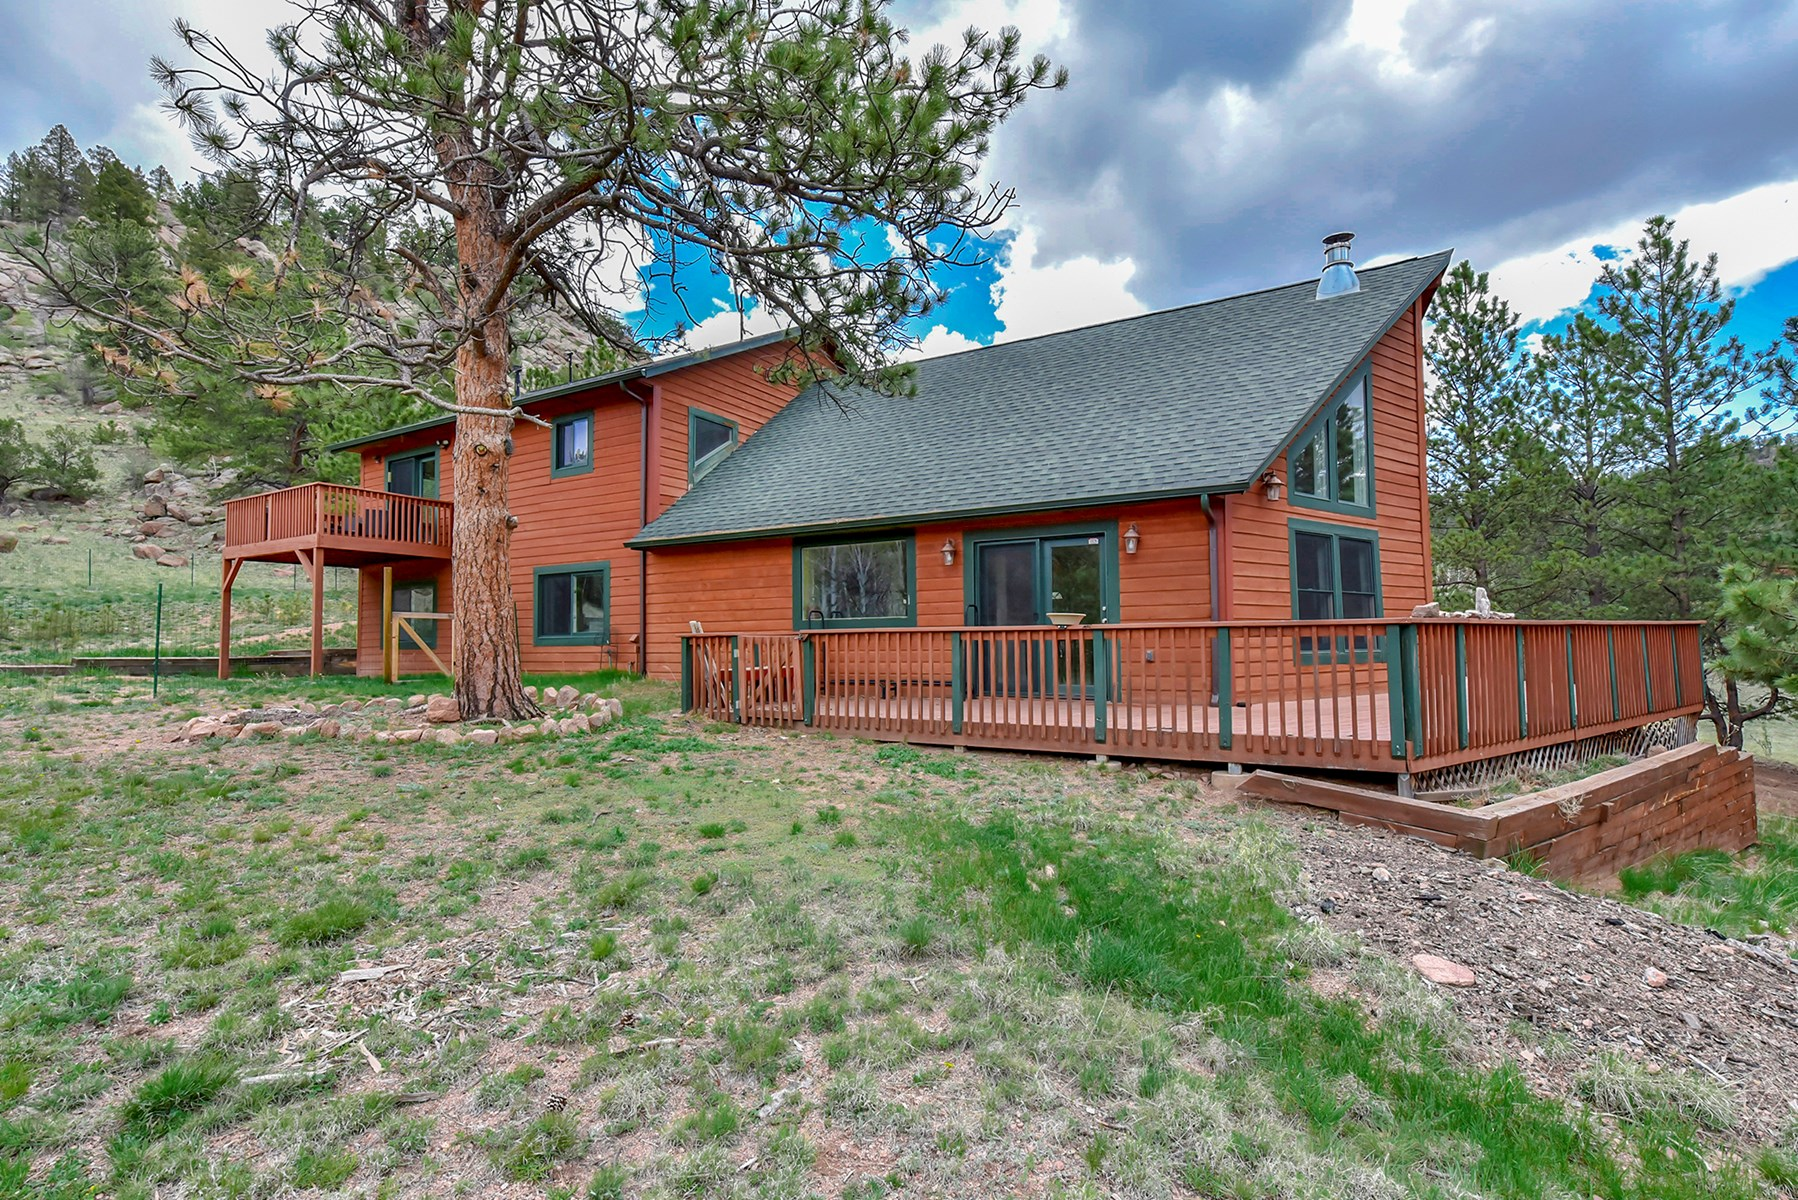 Secluded Mountain Home in Florissant, CO